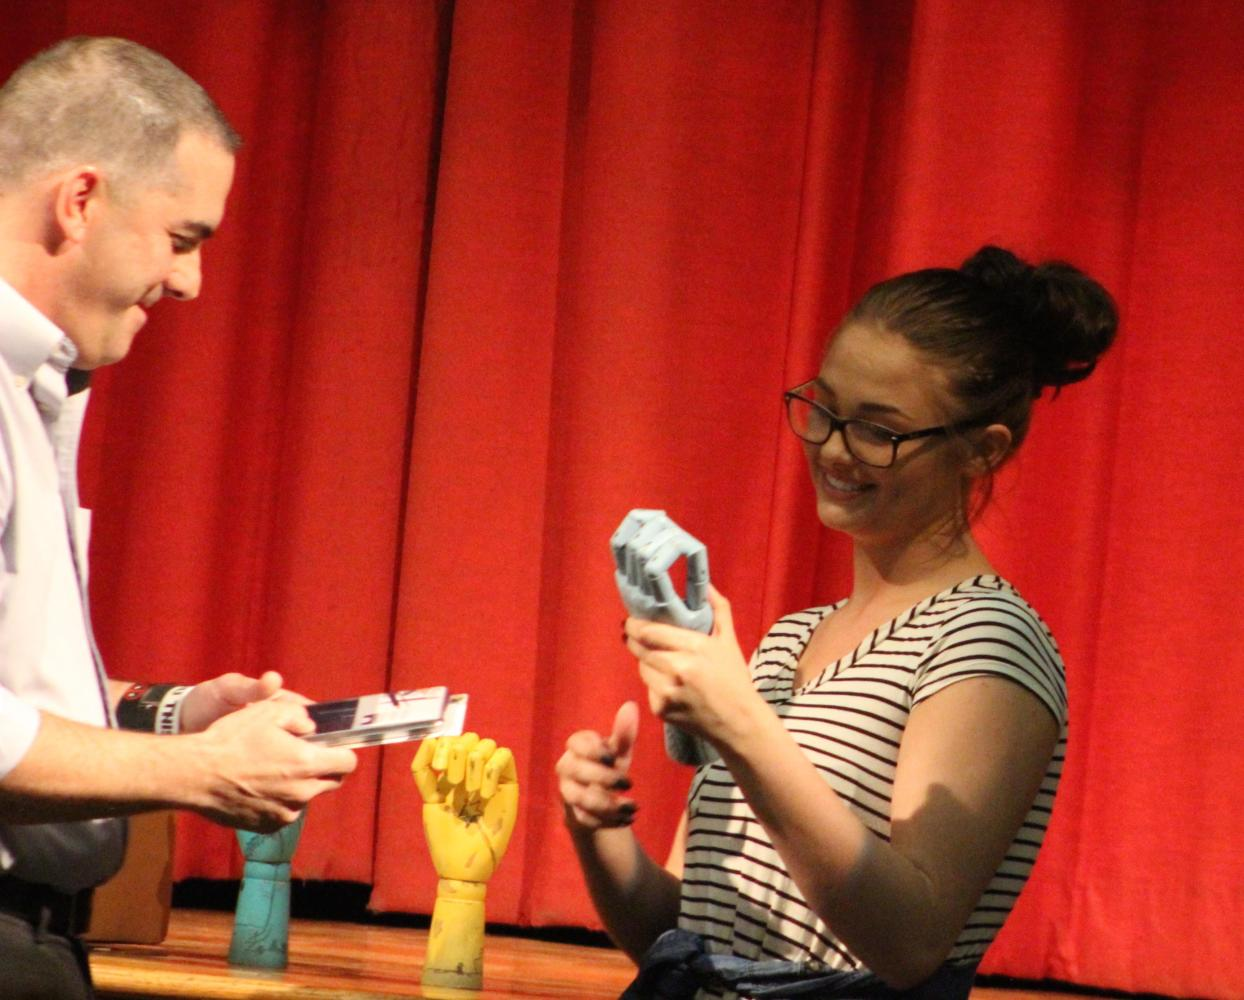 Maddie Zwiebel receives the Art Department Award from Mr. Hurst at the Awards Program.